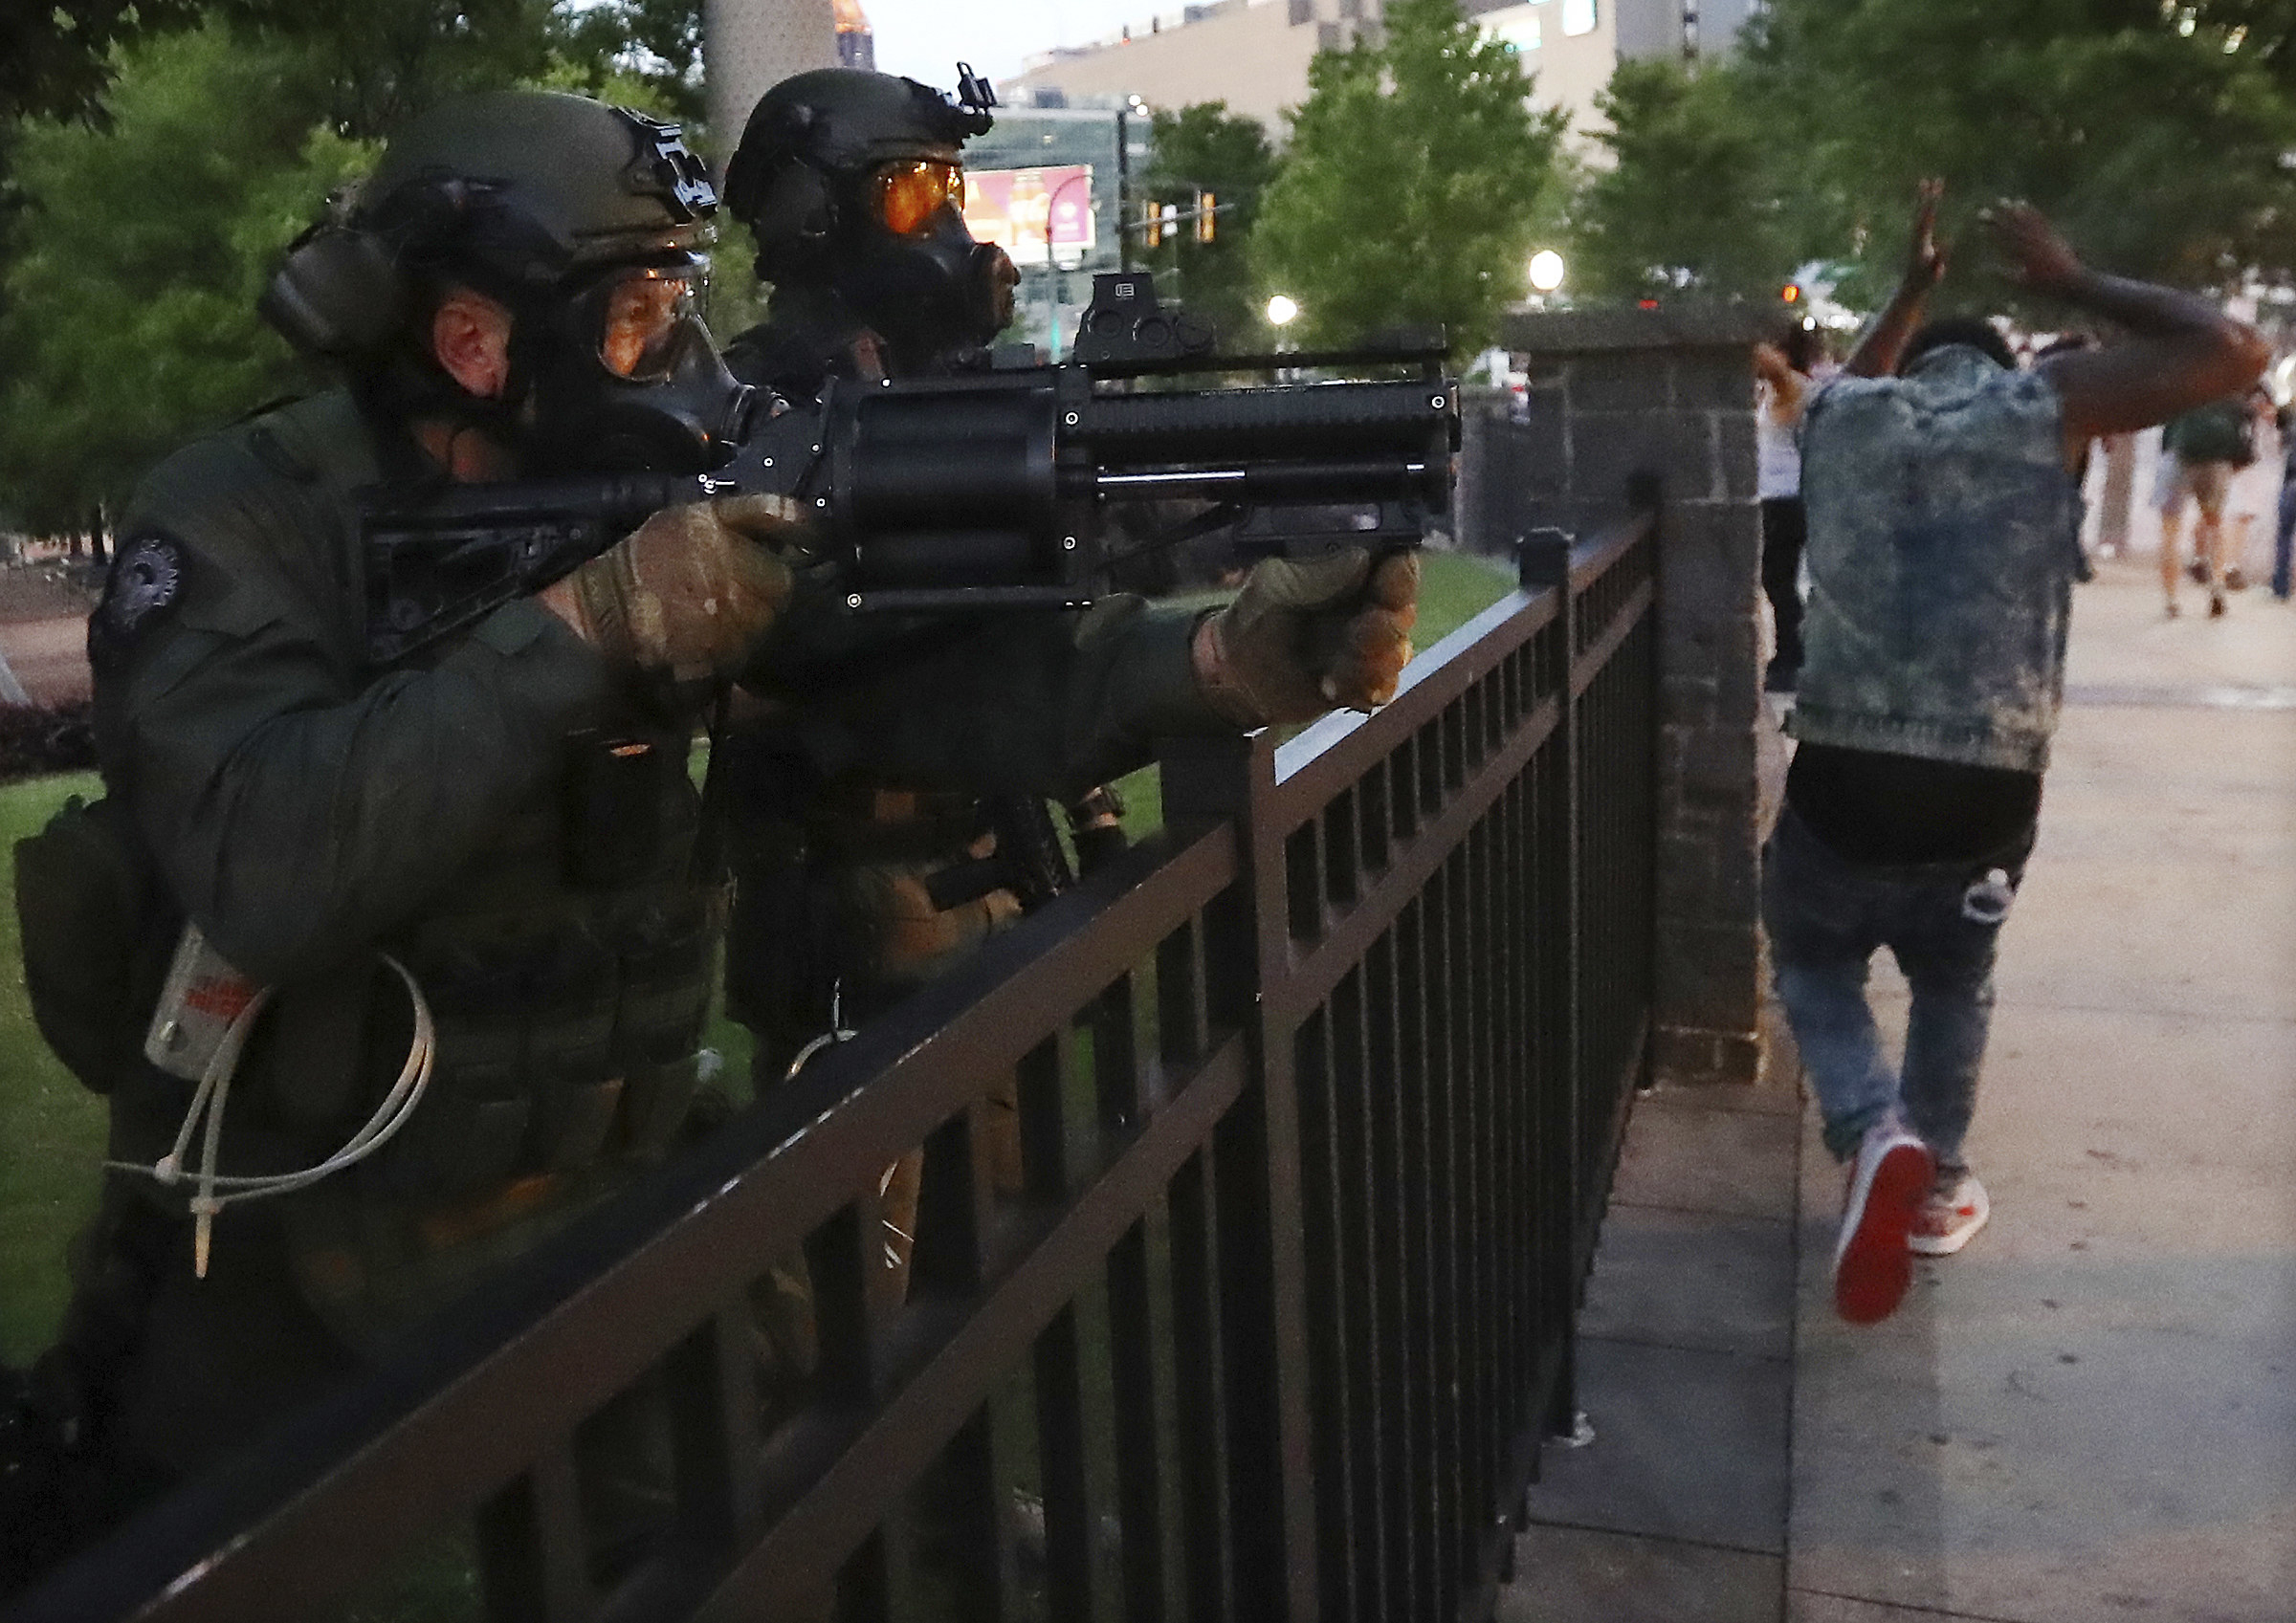 Police officers pointing weapons at BLM protestors